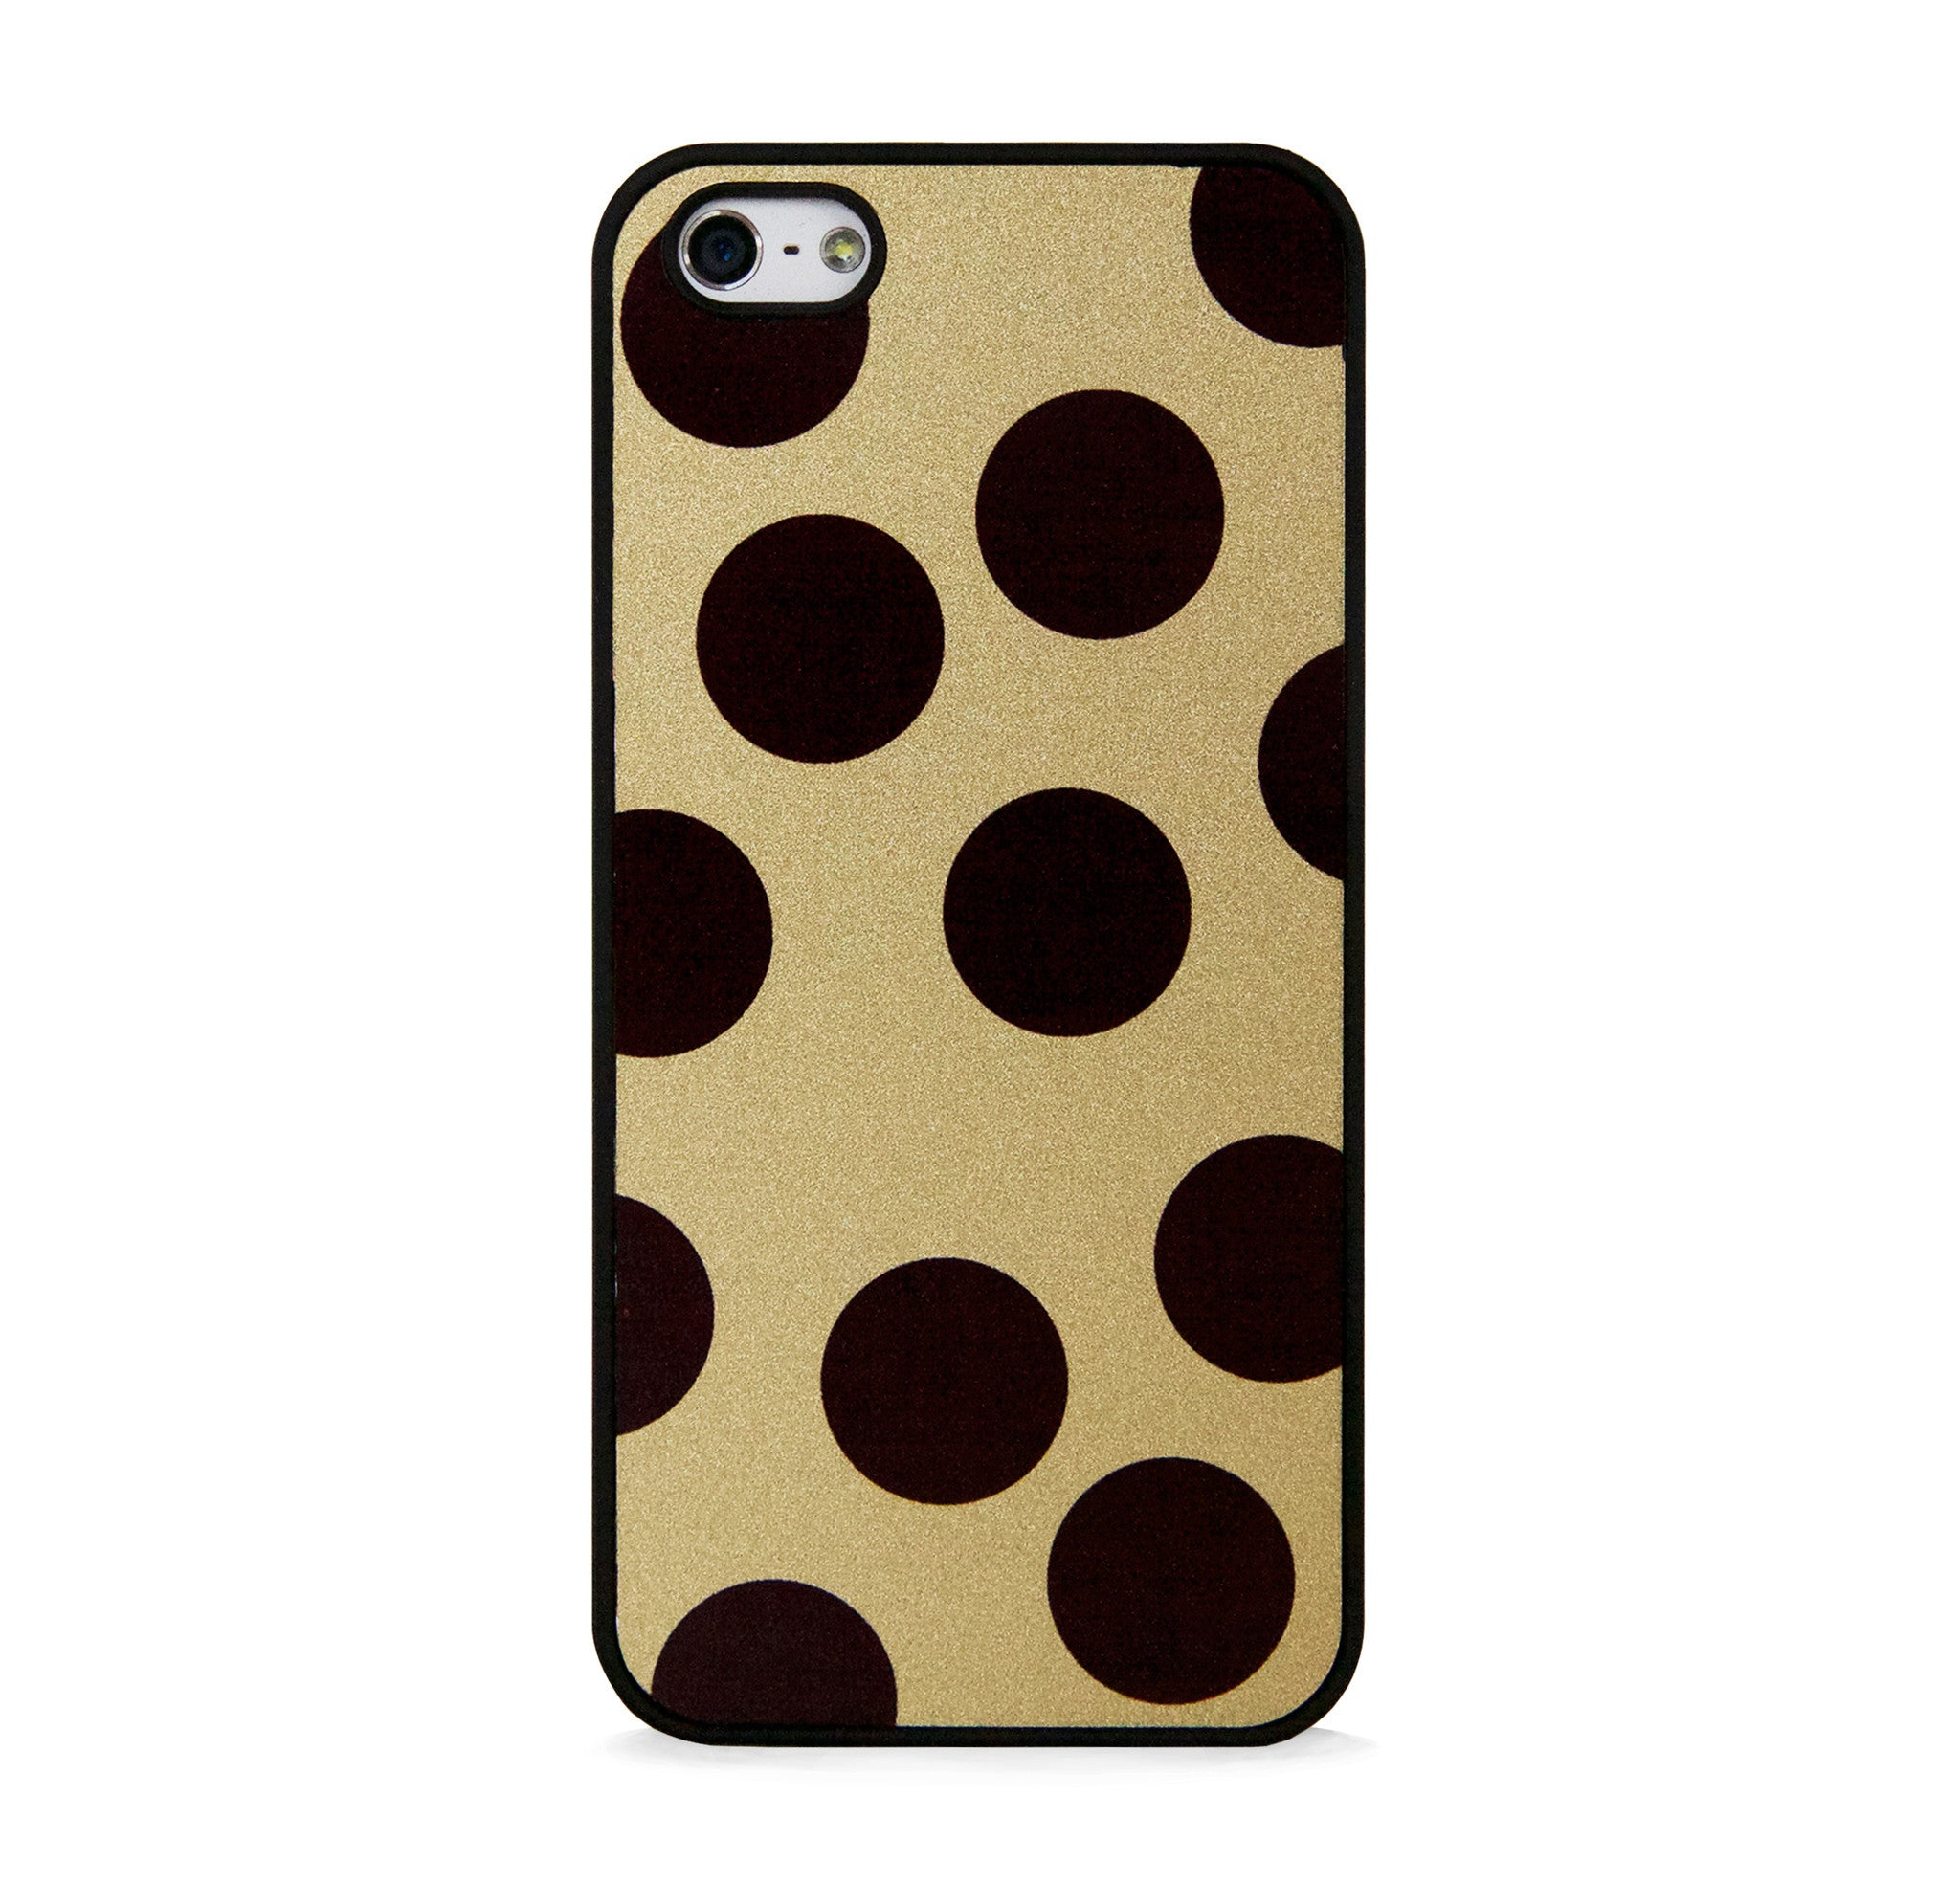 BIG POLKA DOTS ON GOLD FOR IPHONE 5/5S, IPHONE SE